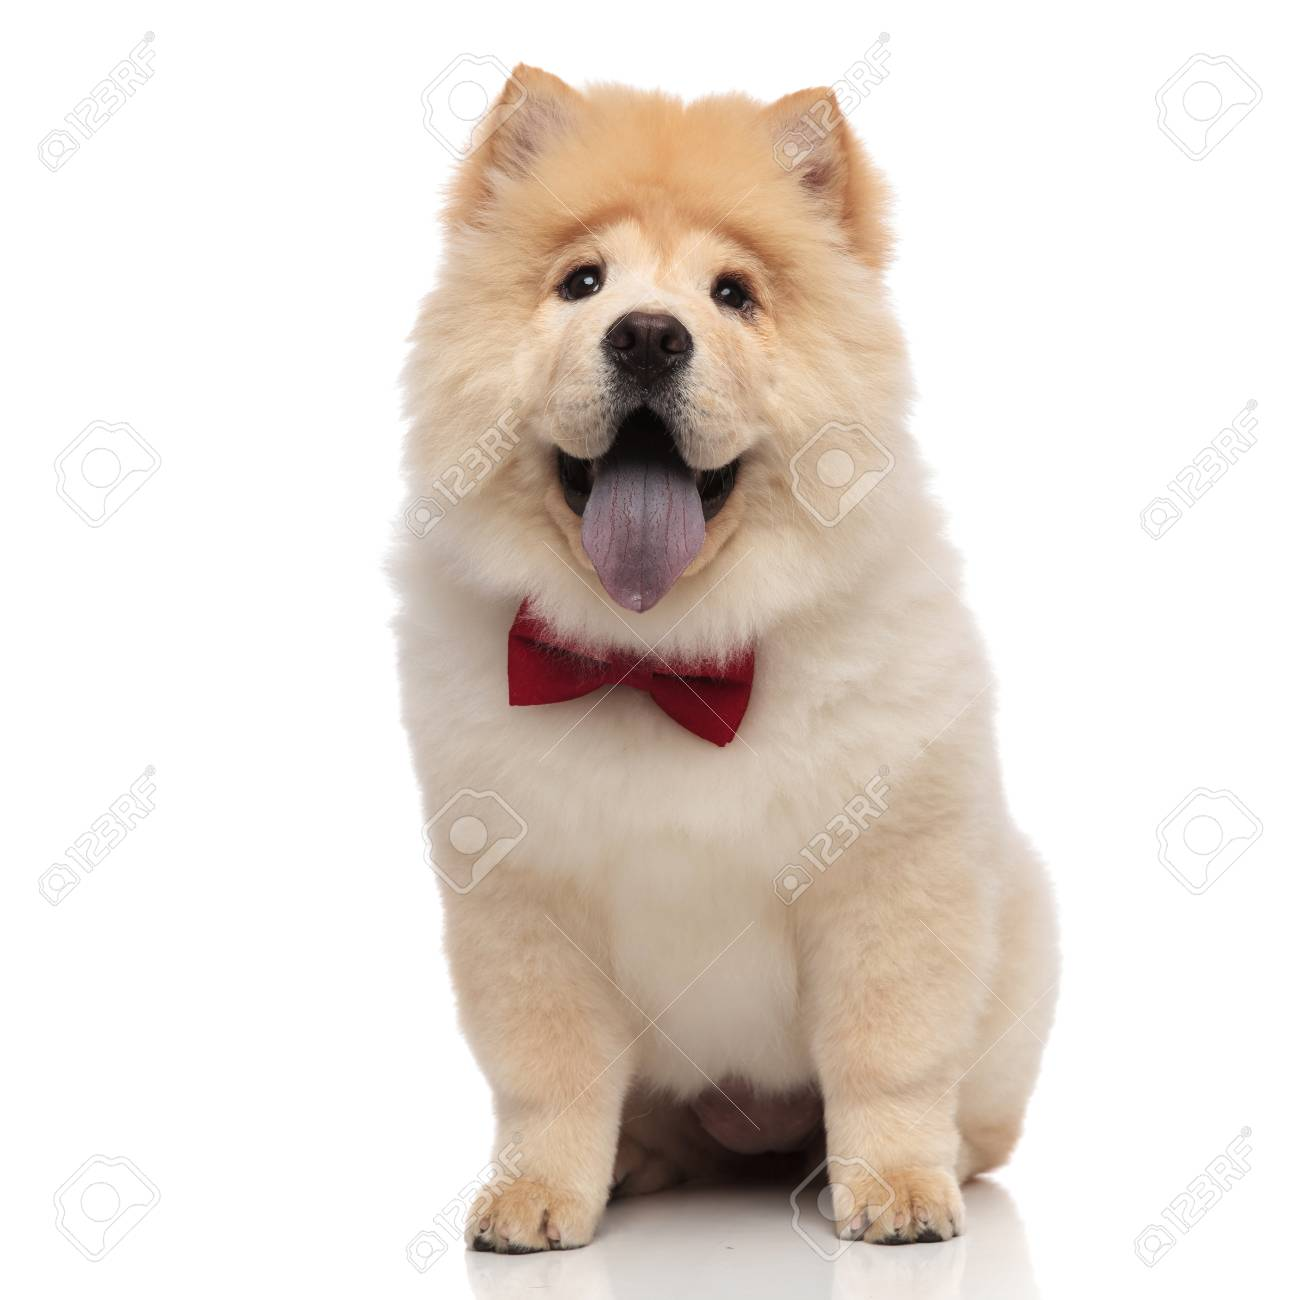 gentleman chow chow sitting on white background and looking excited while panting - 116788754